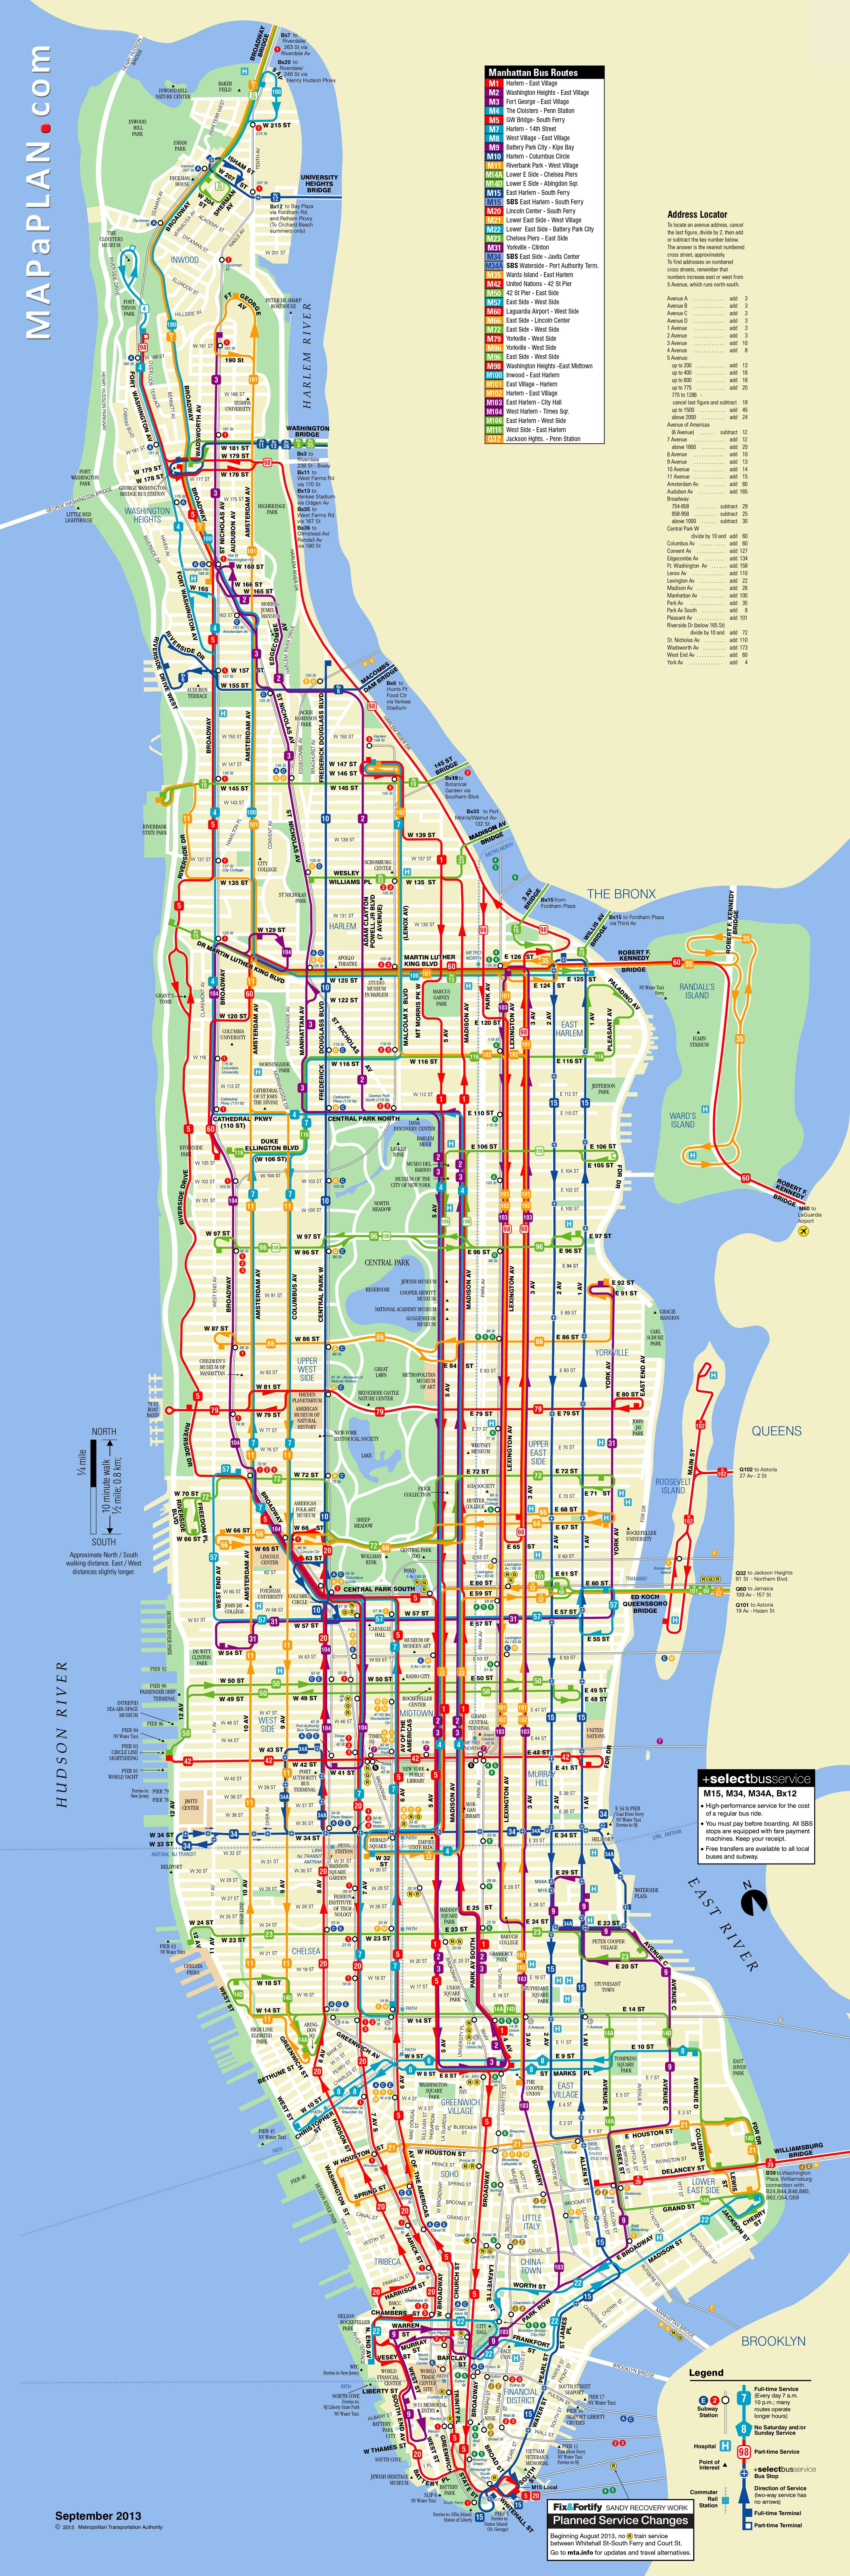 New York City Subway Map High Definition.Manhattan Bus Travel Routes New York Top Tourist Attractions Map